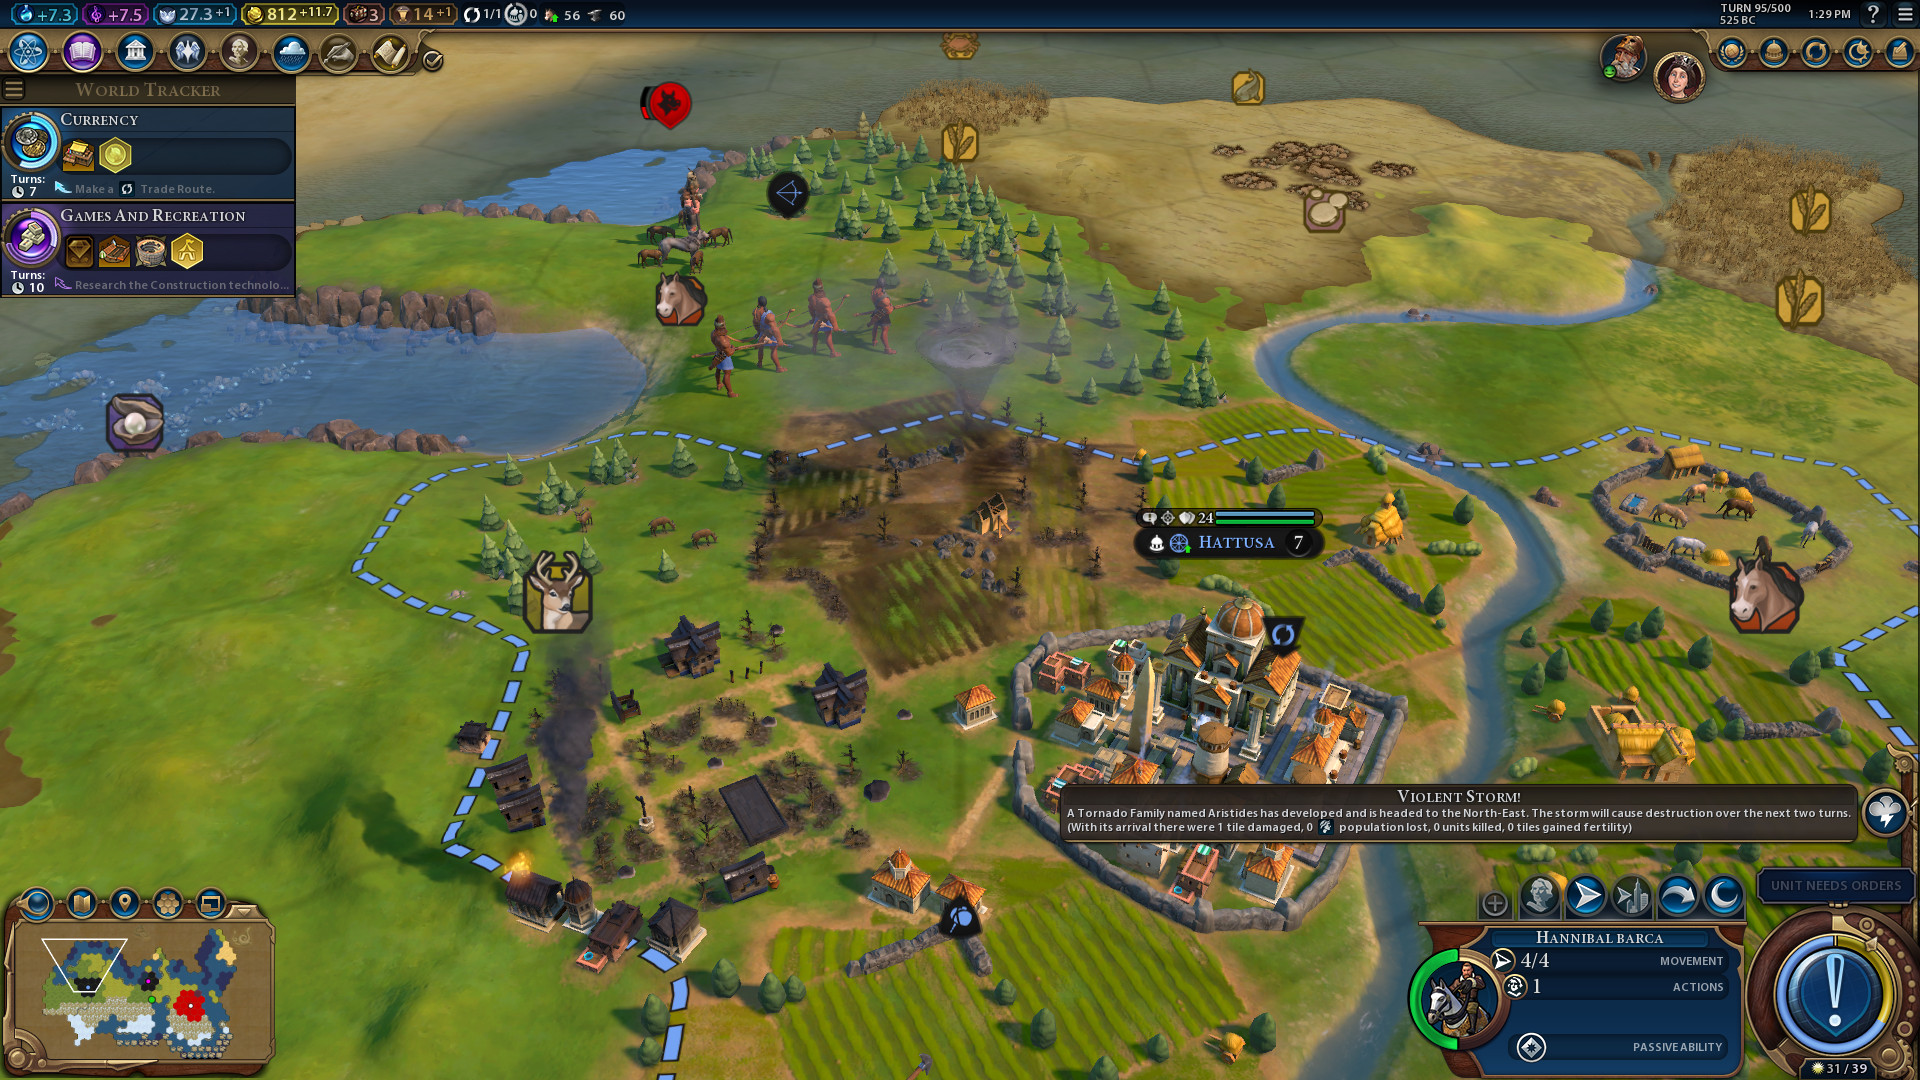 Sid Meier's Civilization VI: Gathering Storm is out with